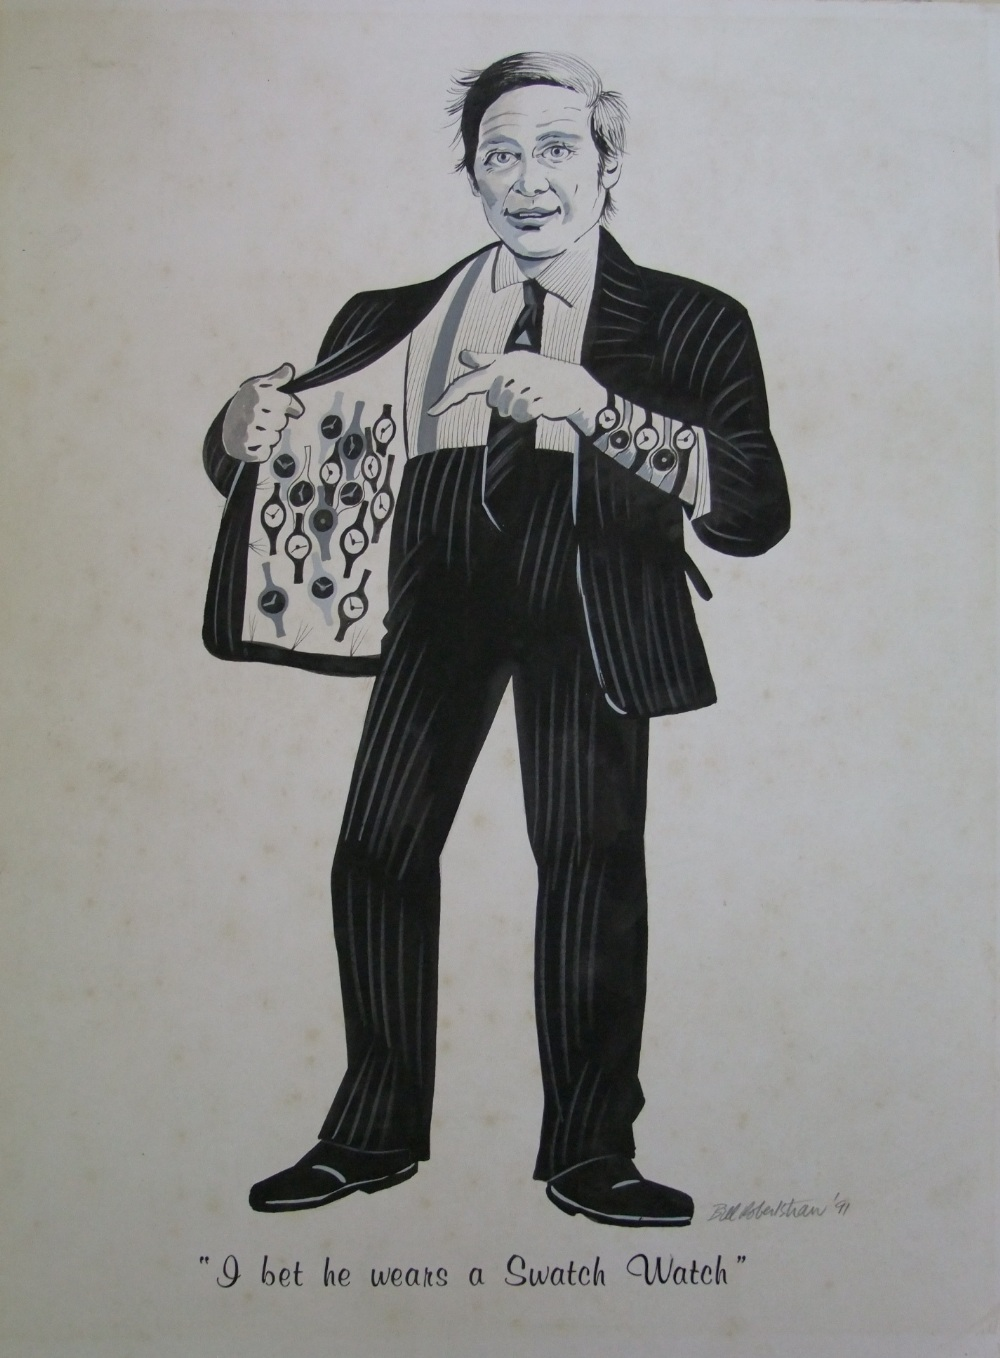 Lot 565 - William (Bill) Robertshaw (20th century) a black and white gouache advertising study of a humorous